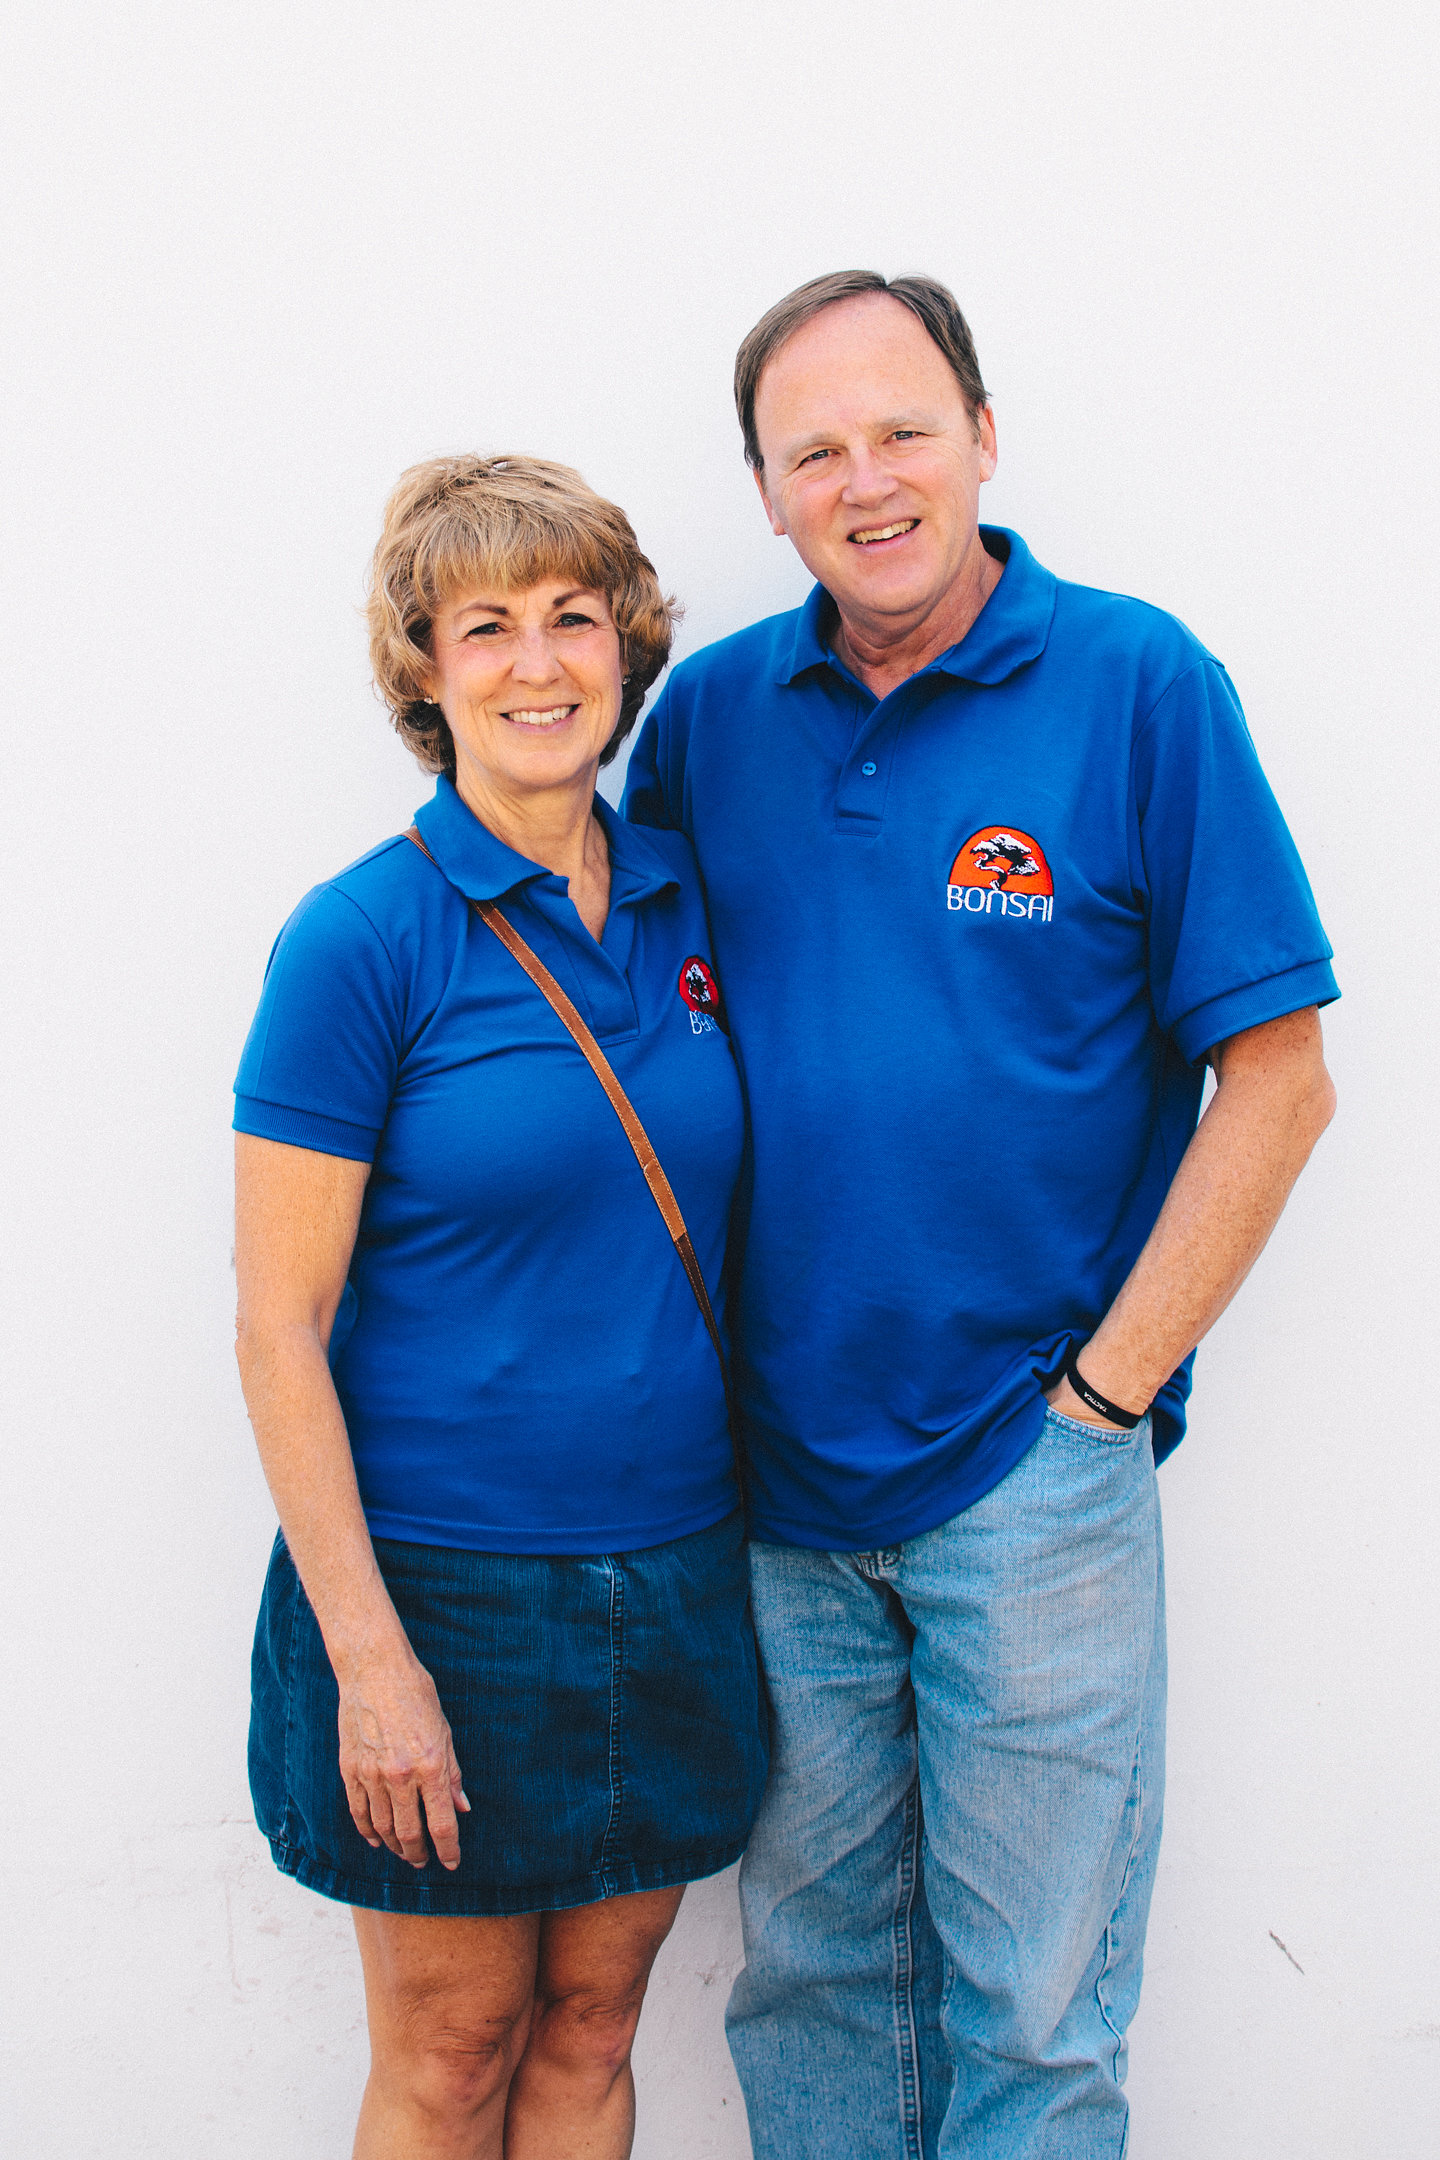 Steve & Robin Wright - Steve and Robin are from the Kansas City, Missouri area. They are retired, but prefer to use the term